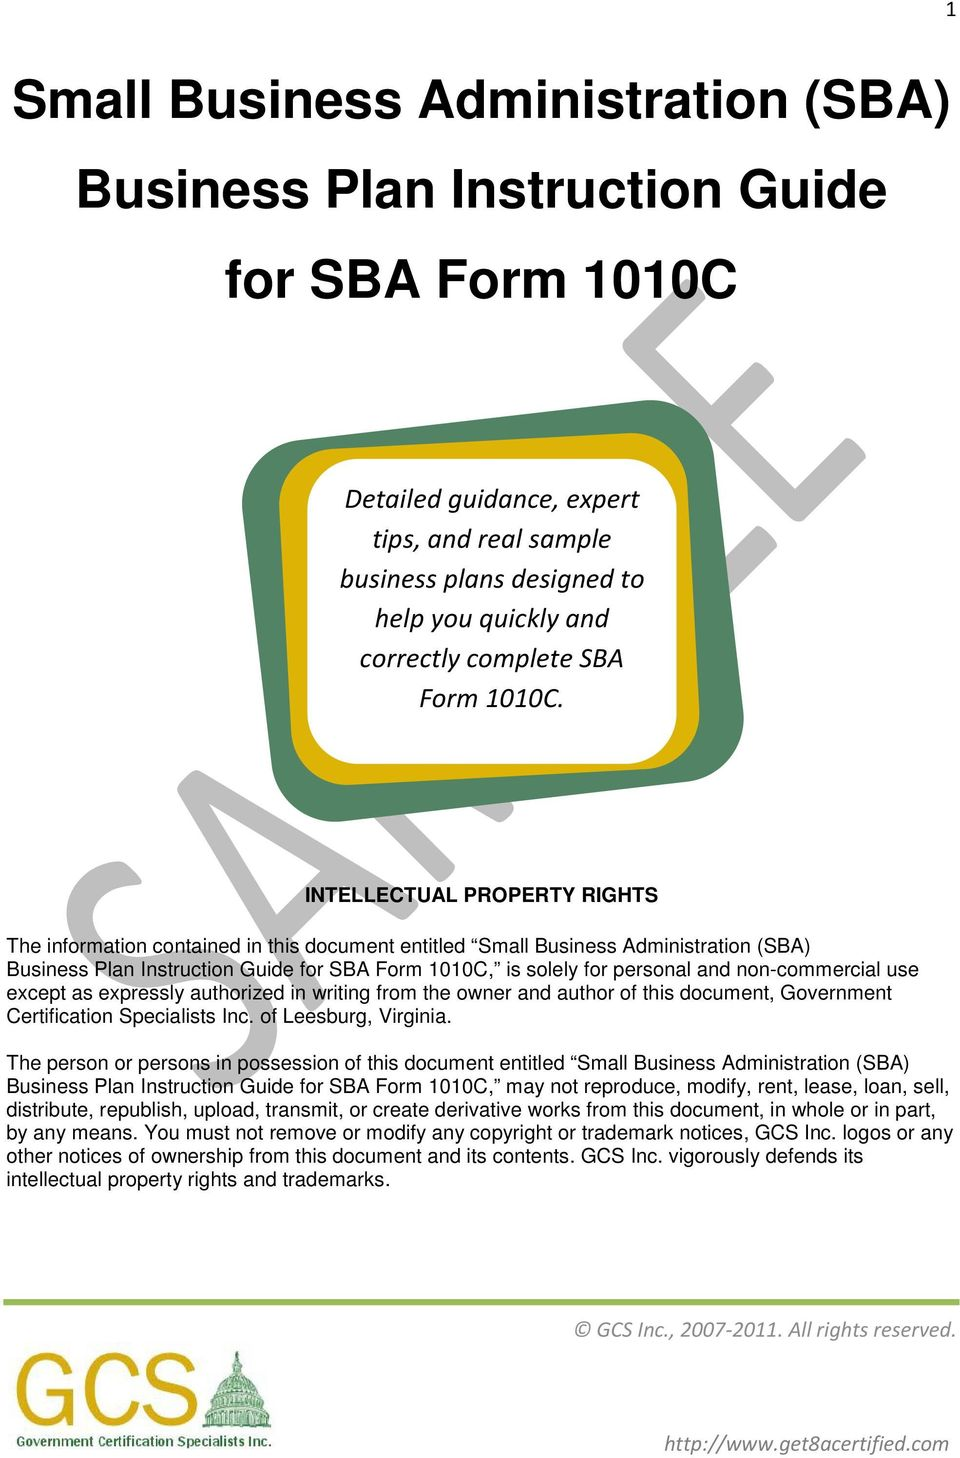 sba business plan form 1010c